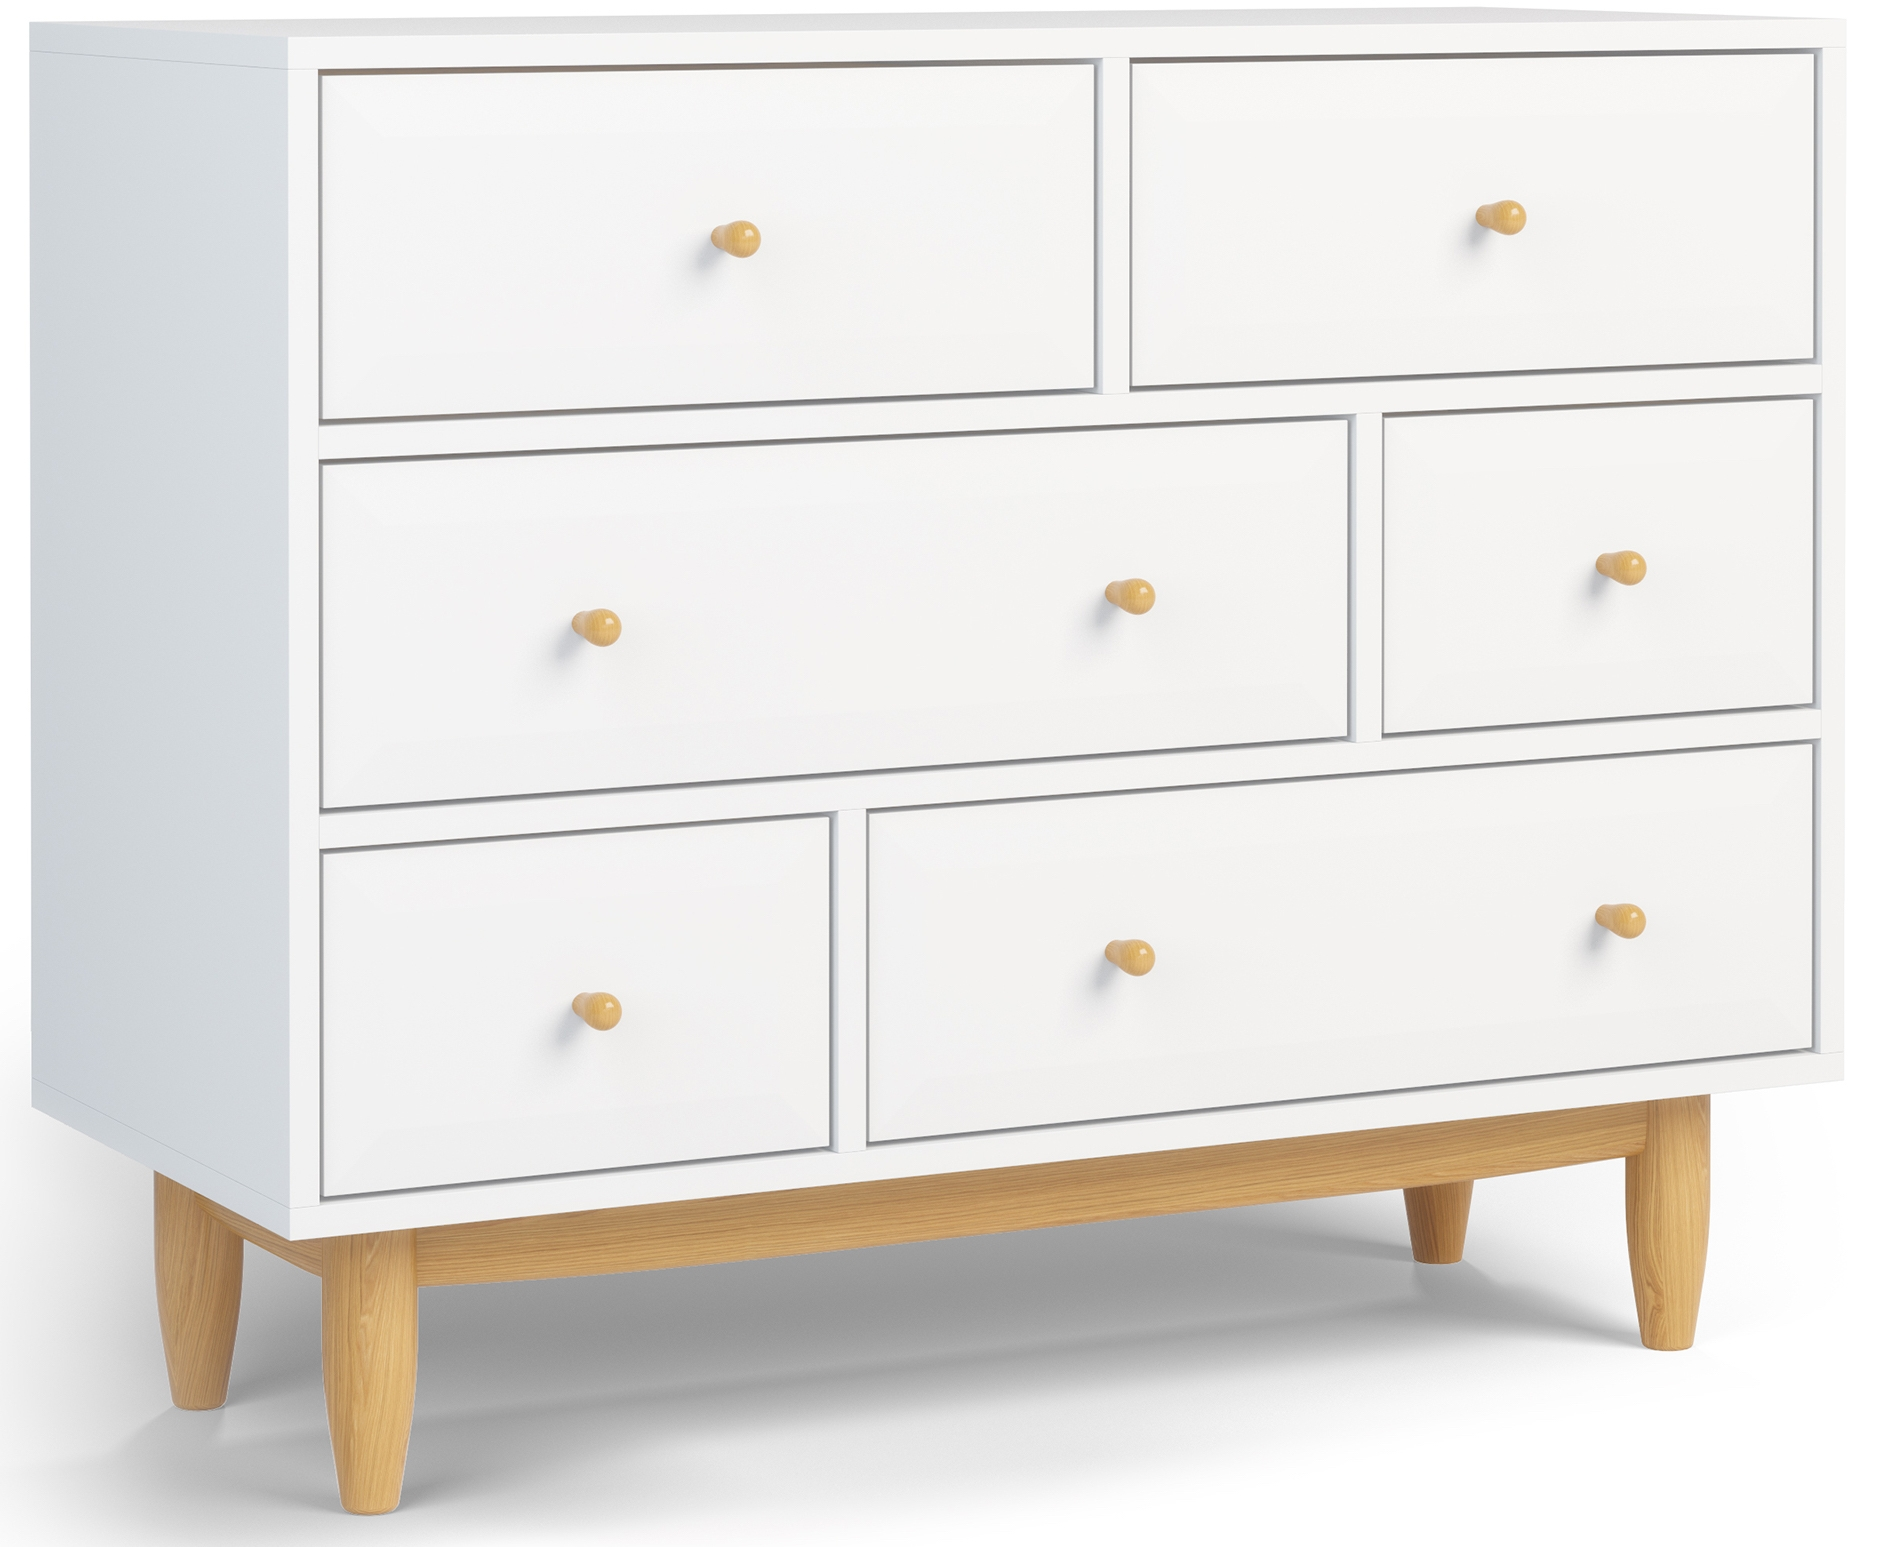 commode malm 6 tiroirs blanc acheter malm ikea malm. Black Bedroom Furniture Sets. Home Design Ideas